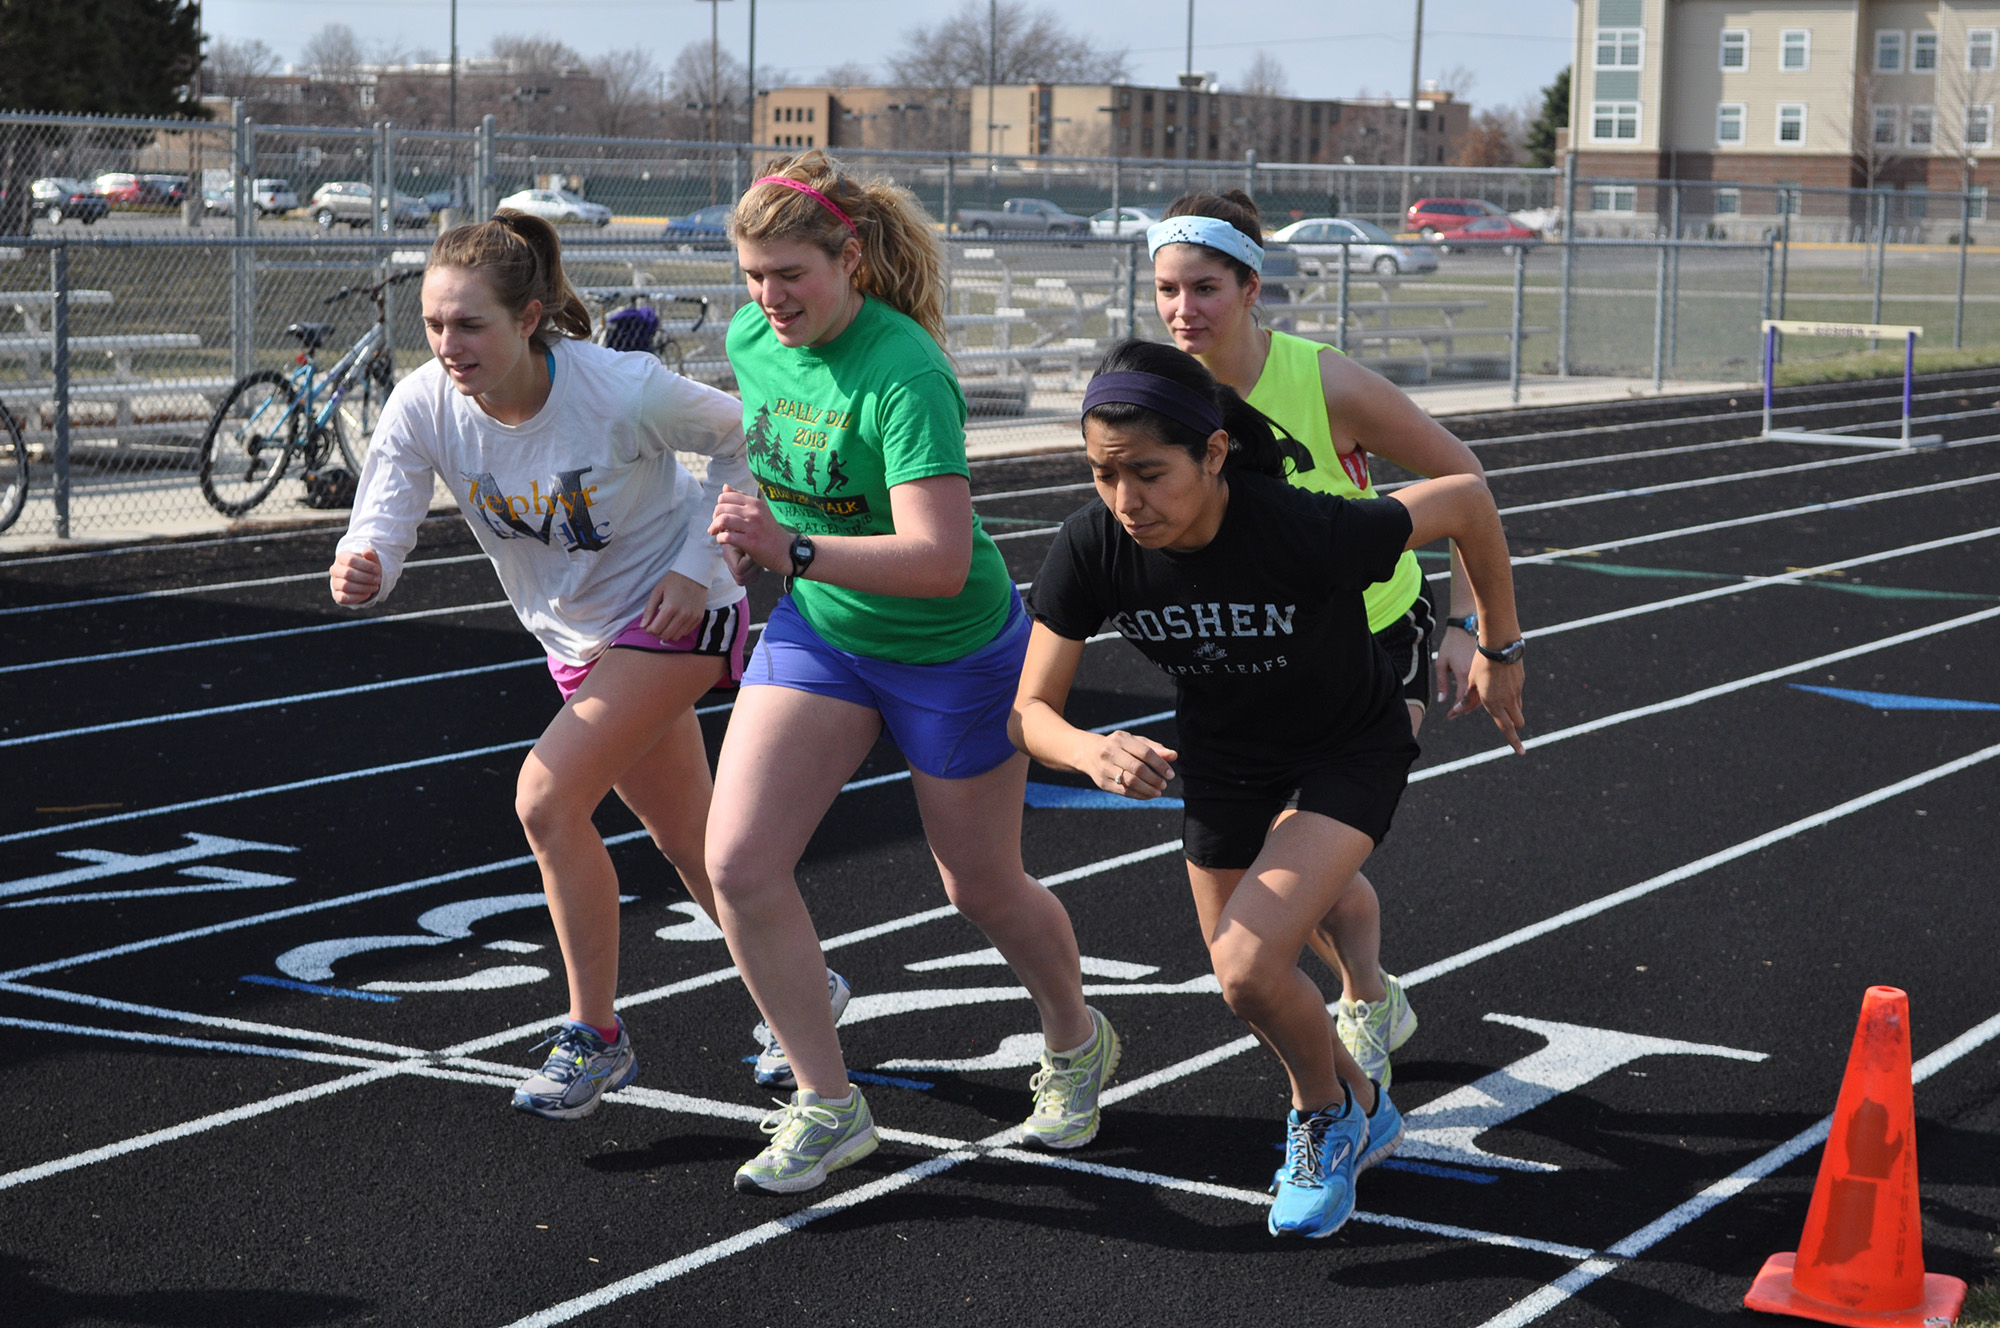 women accelerate at starting line